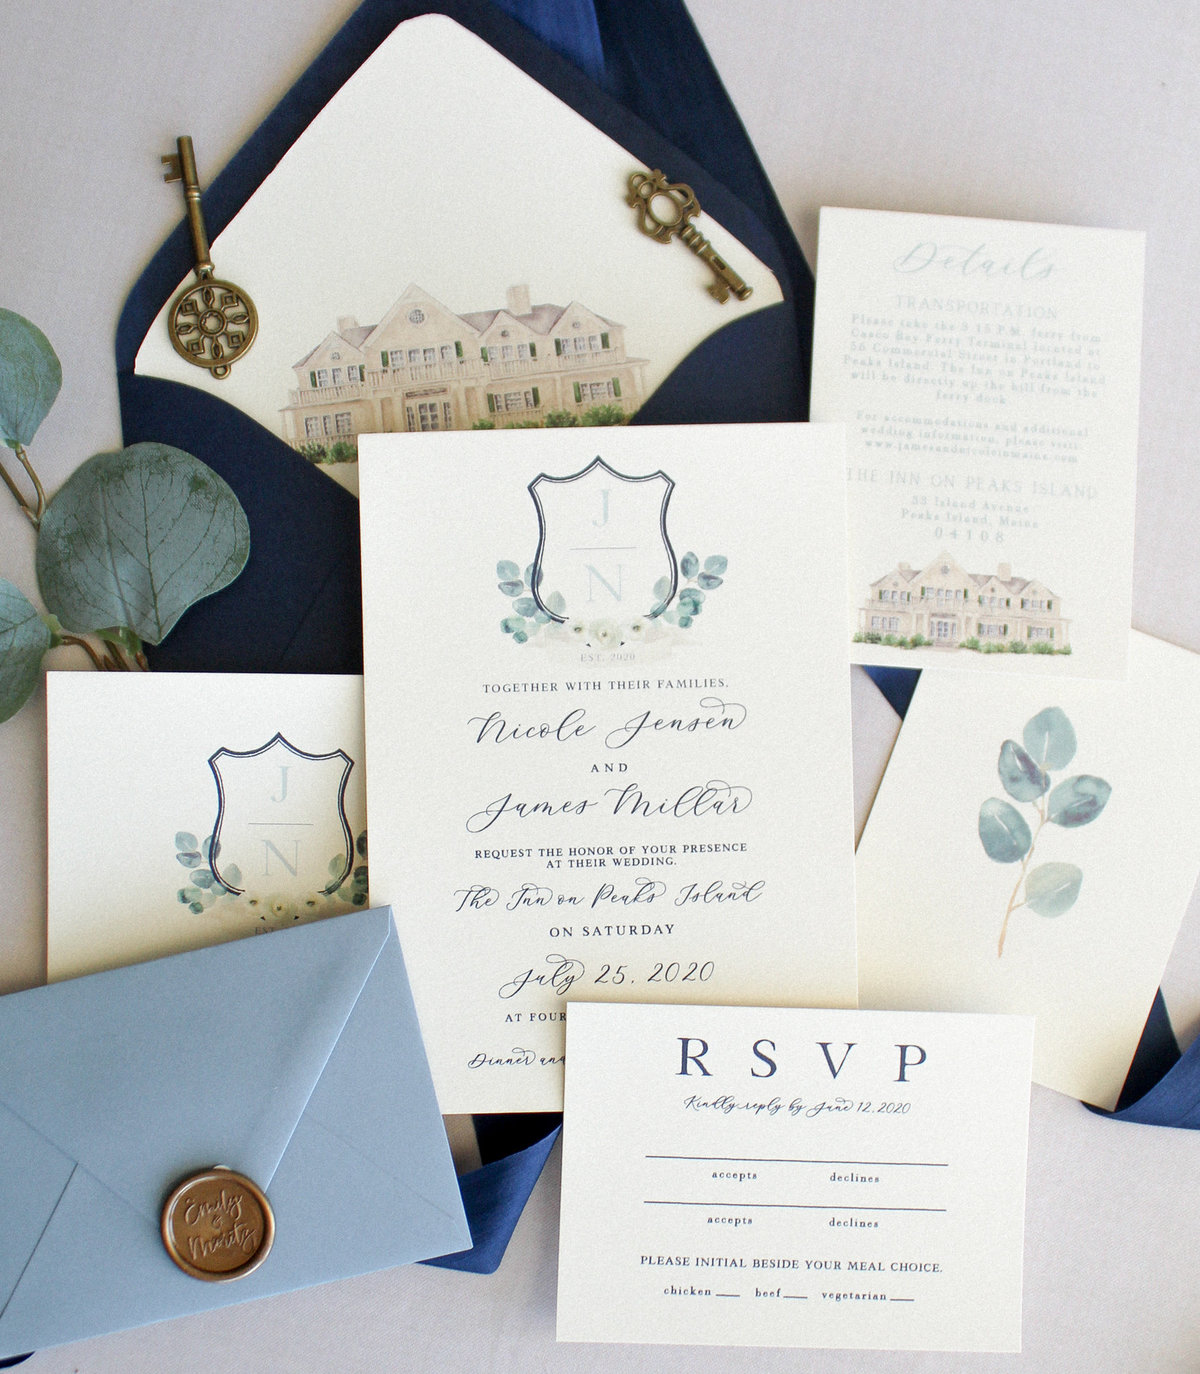 Custom Crest Wedding Invitations New England